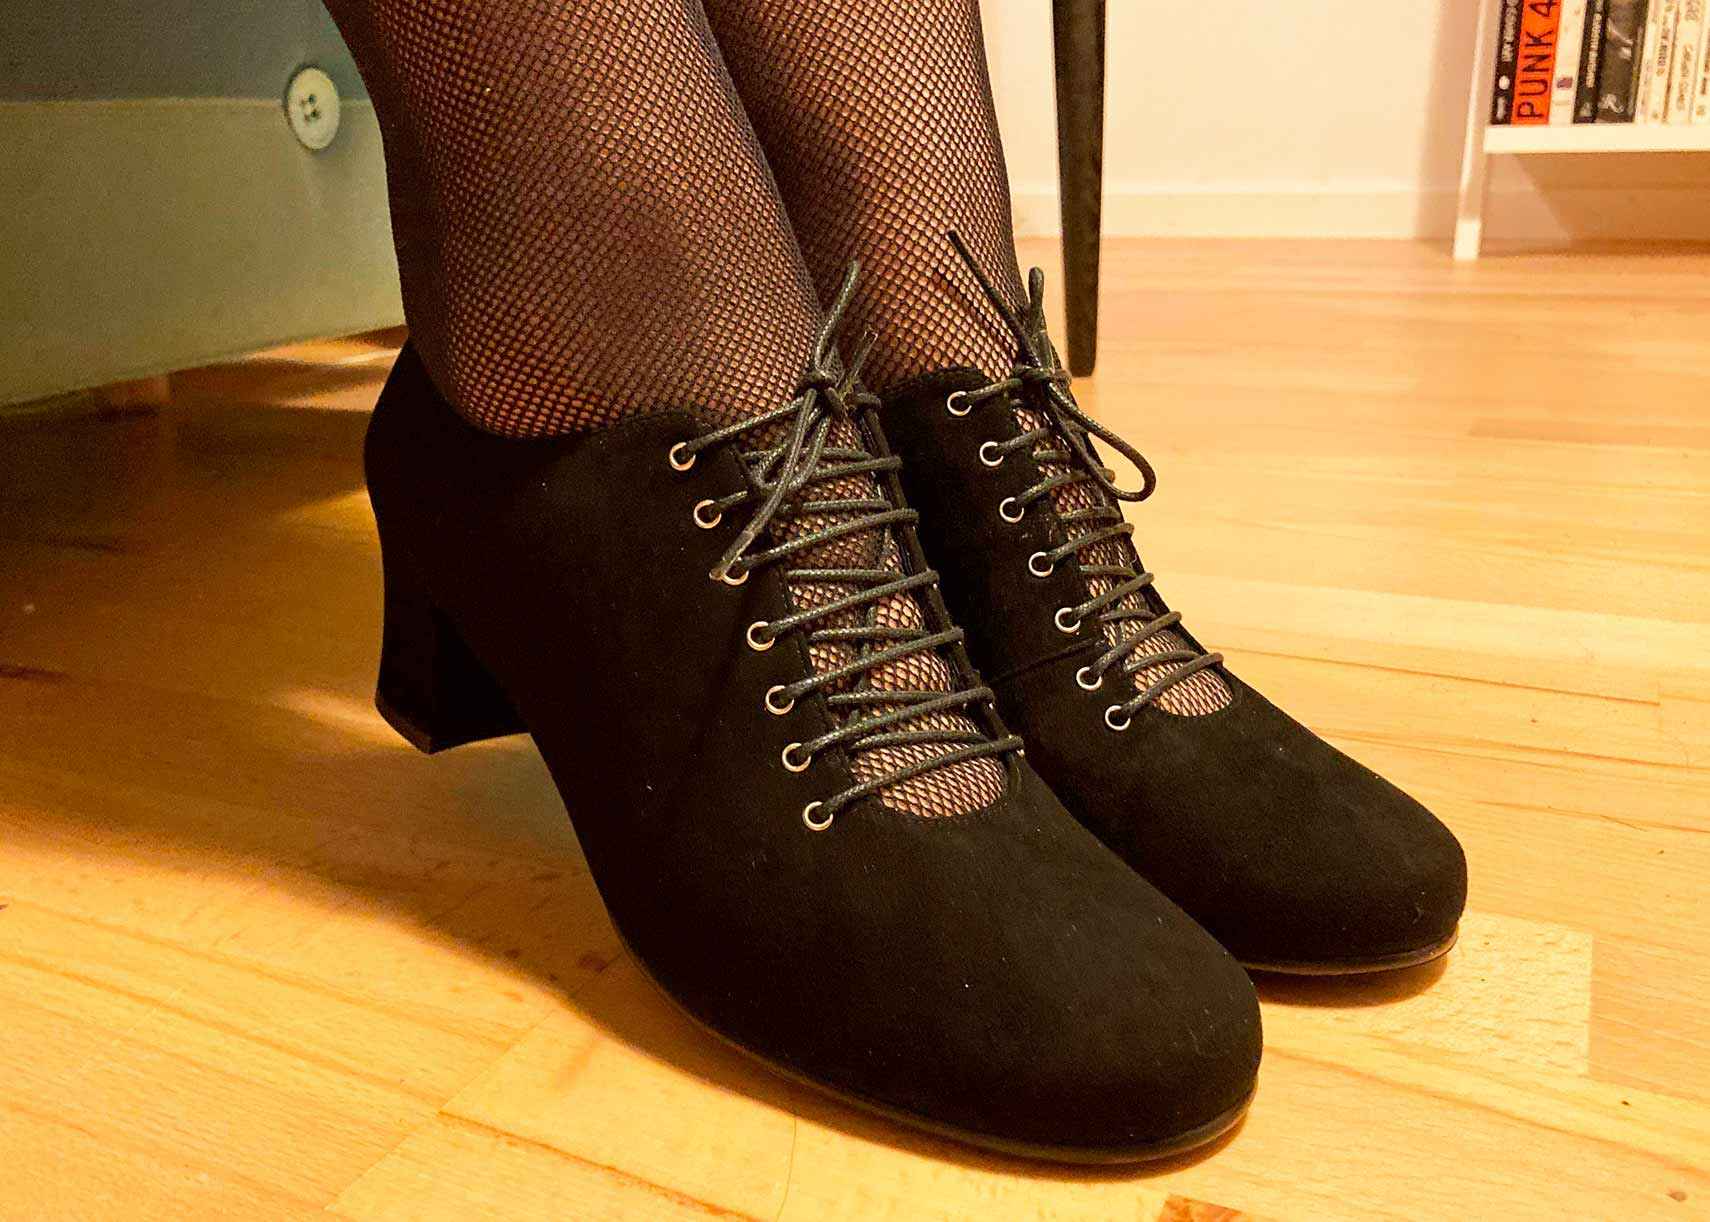 Retro lace-up shoes in black suede from Nordic Shoepeople